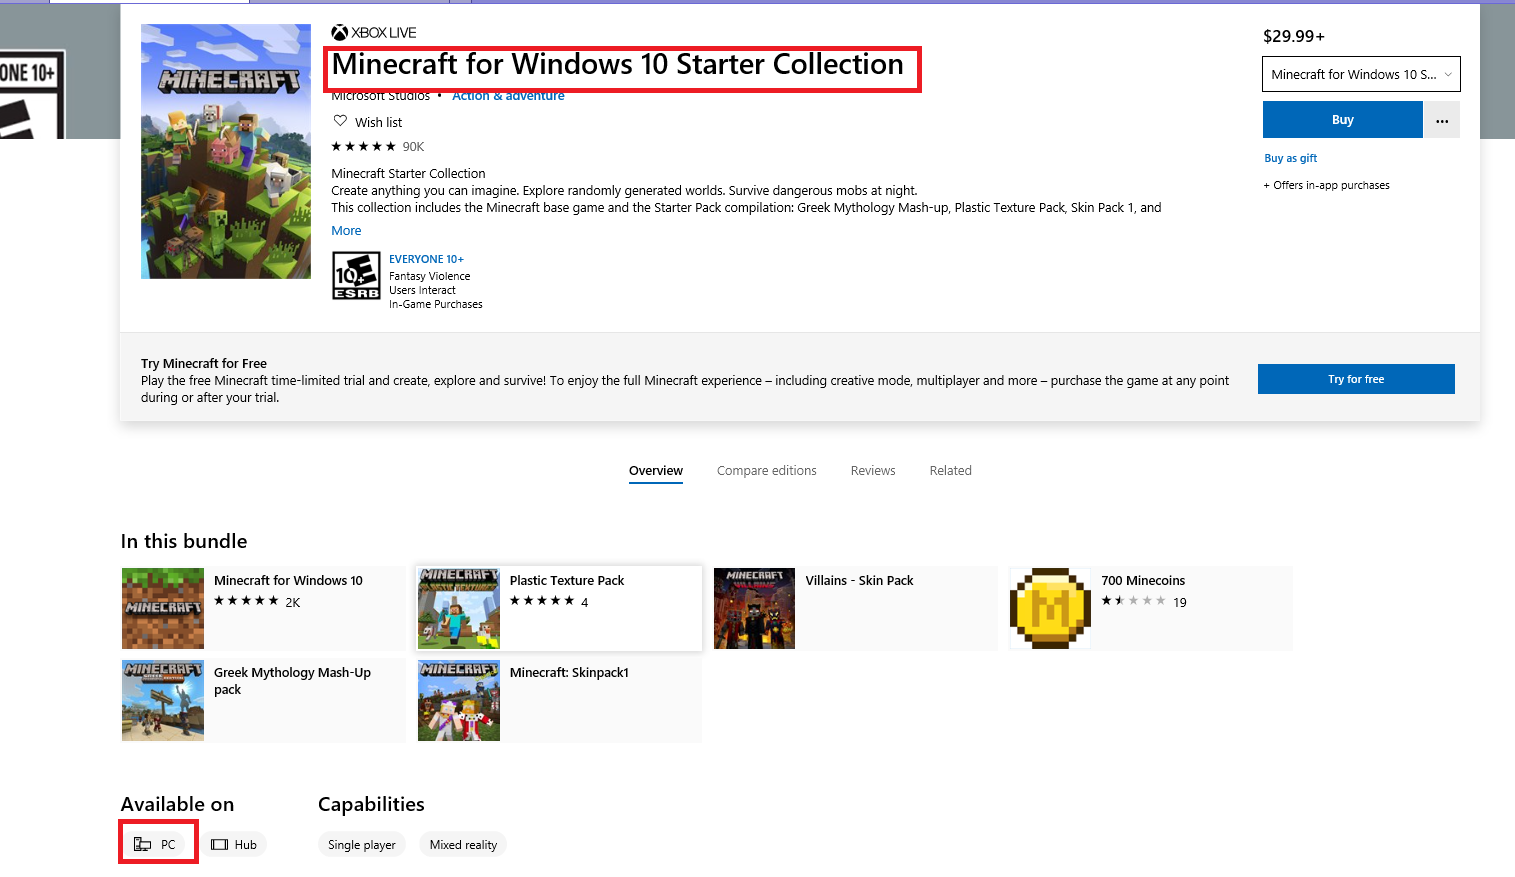 Refund option not available for Minecraft Starter Collection 3786f464-ee7e-4458-88e7-56128929293b?upload=true.png